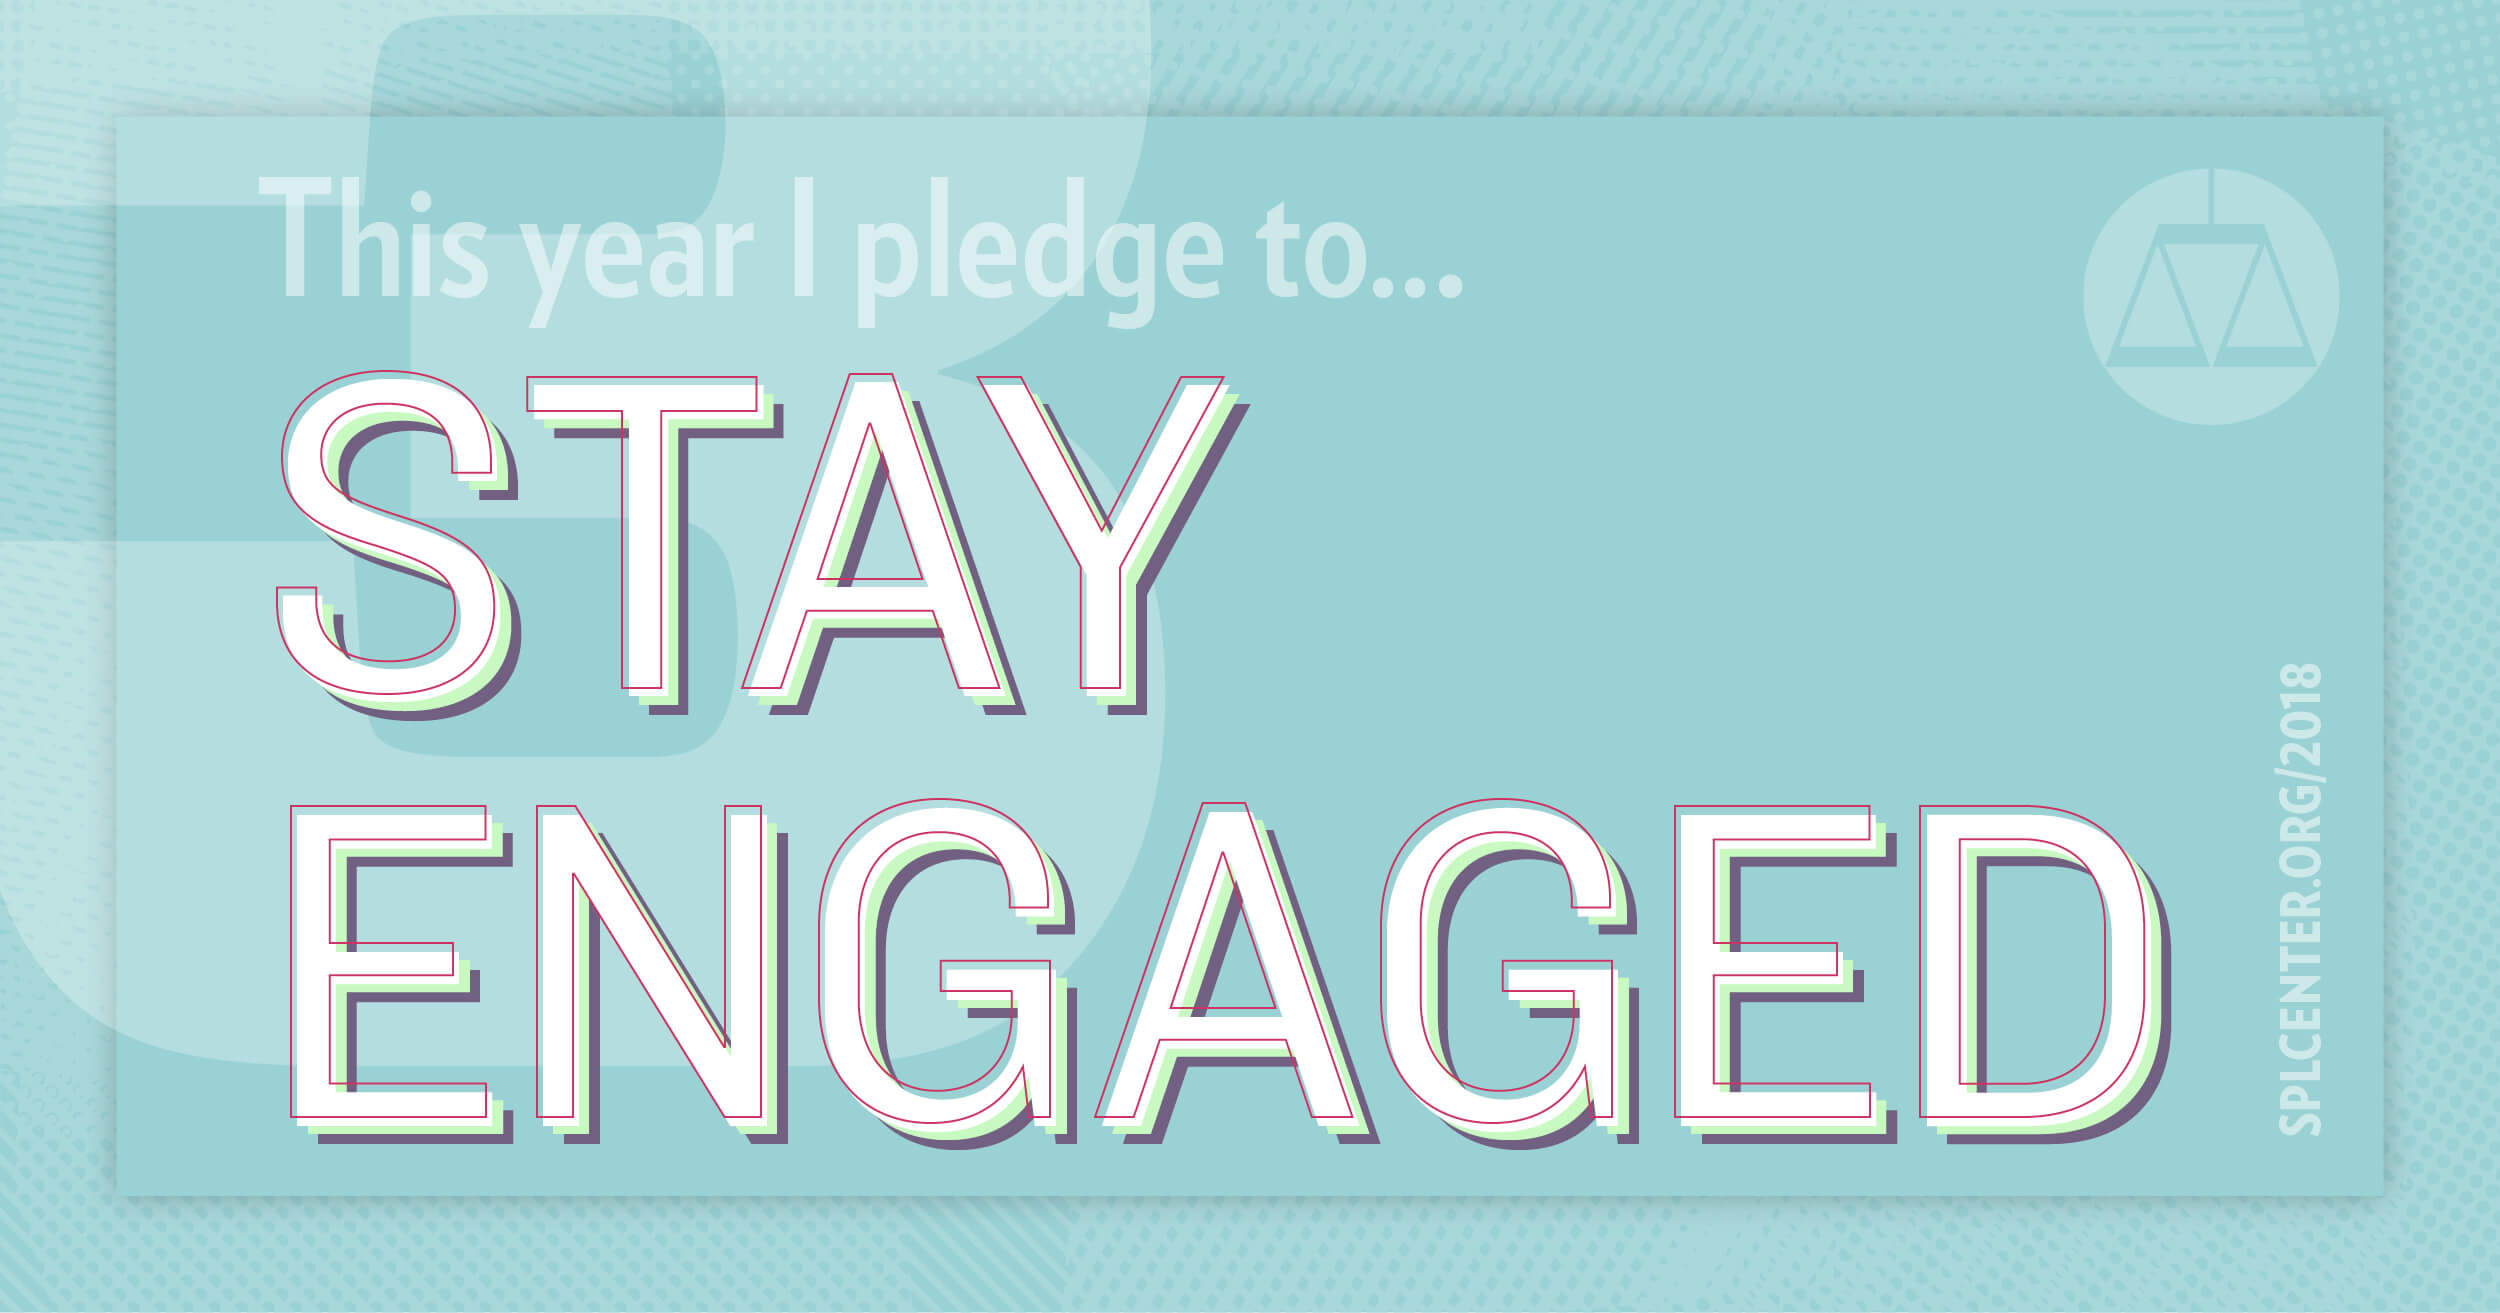 Pledge to stay engaged.